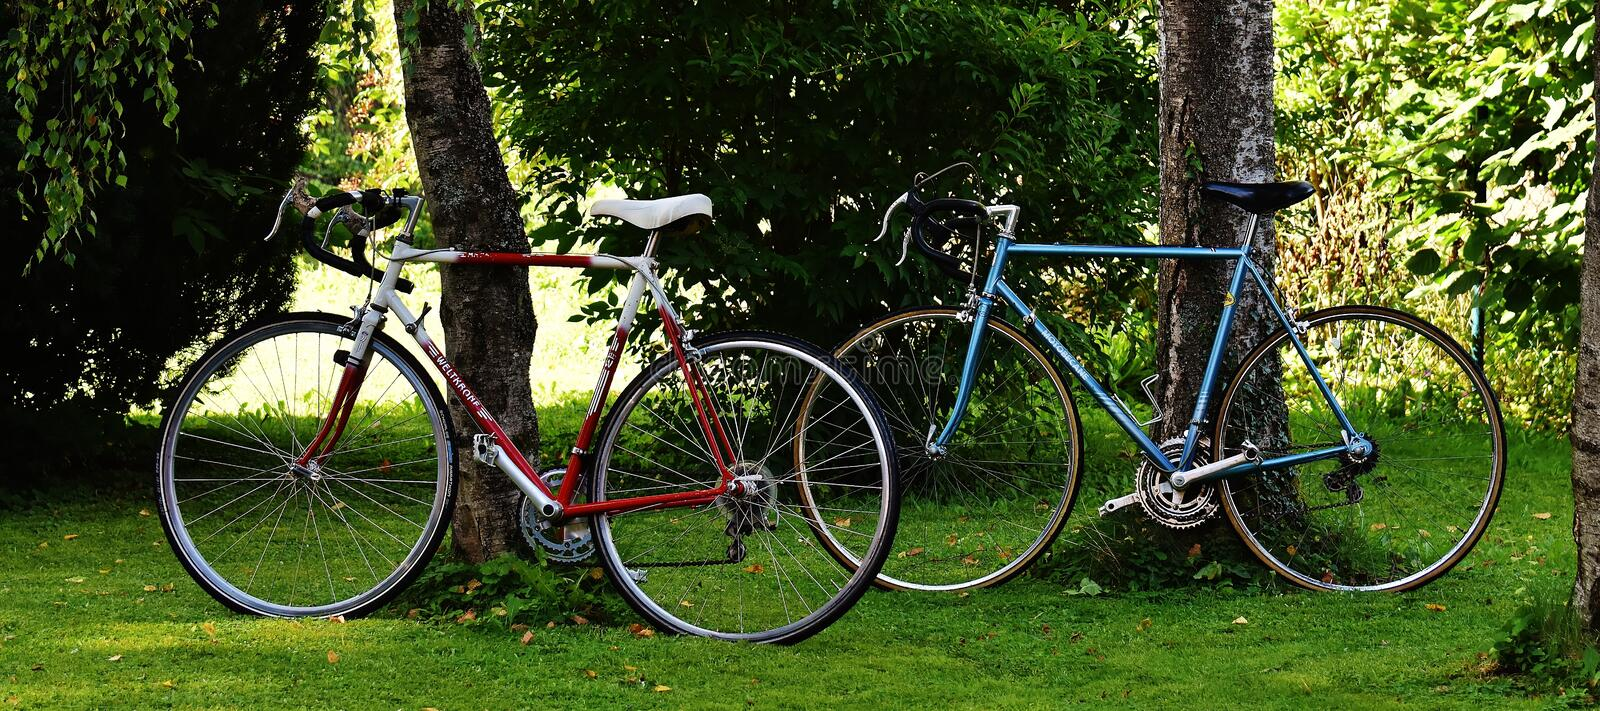 Red and White Road Bike royalty free stock photography